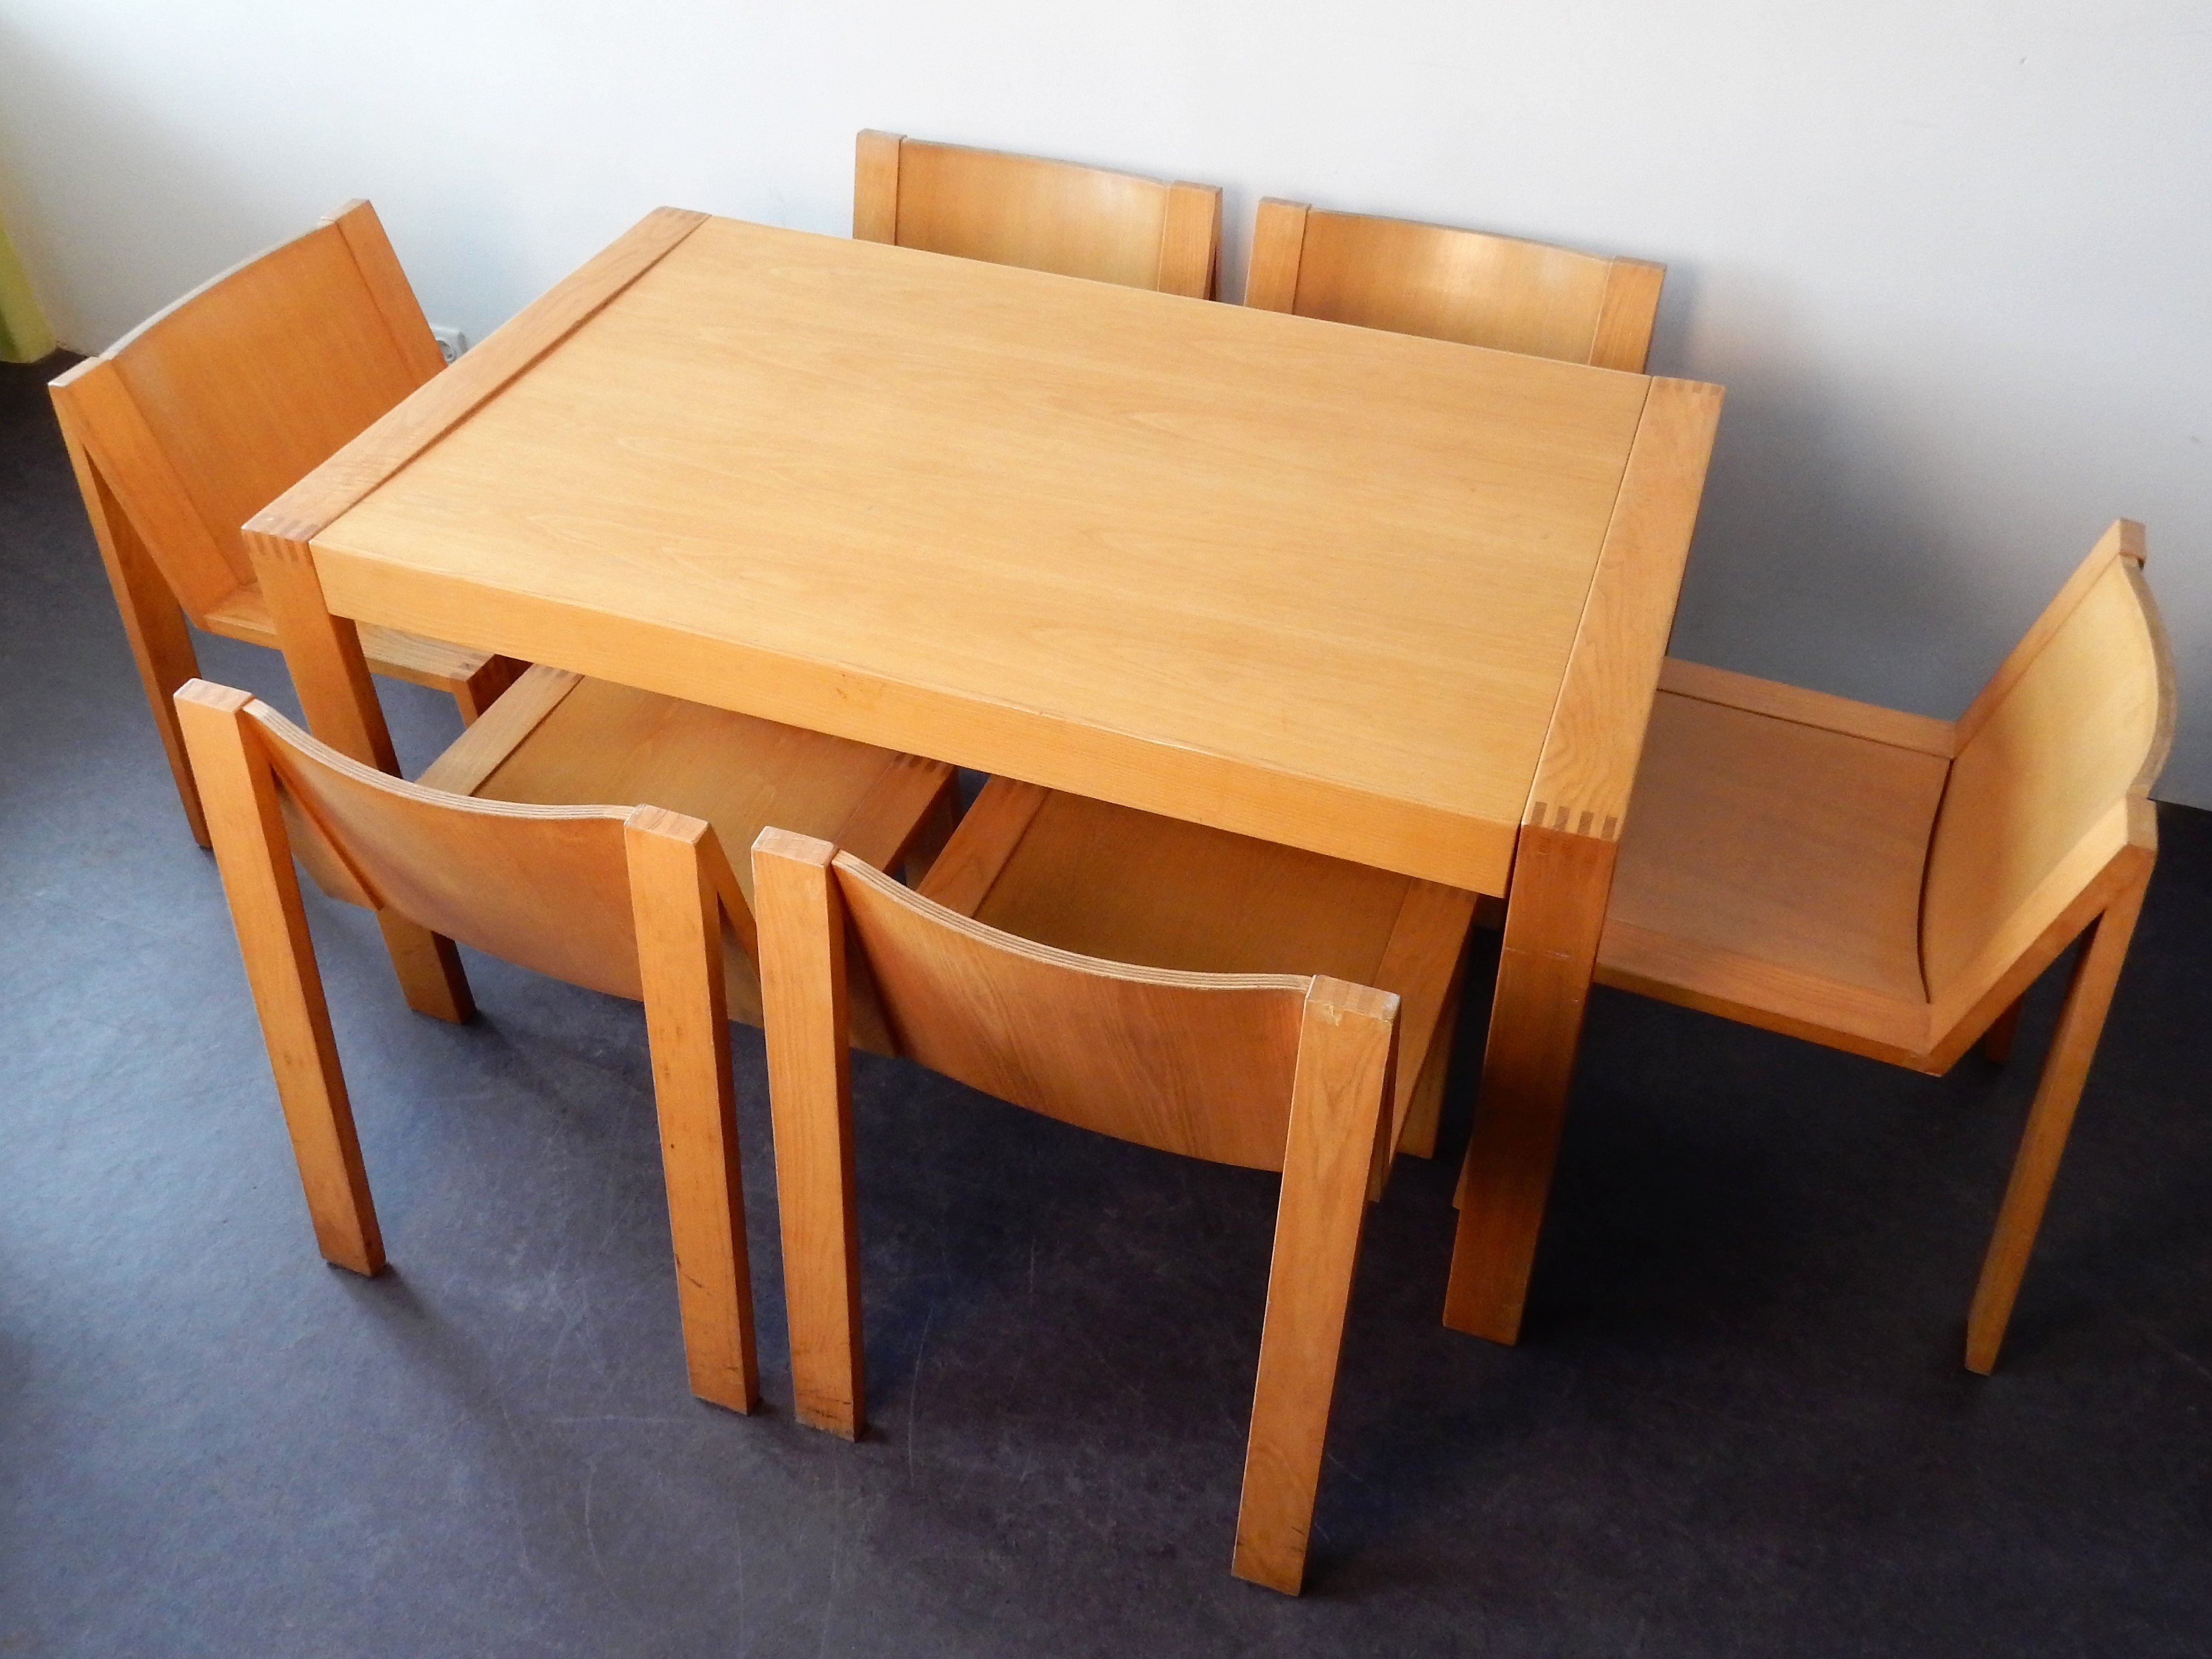 Se15 Extentable Dining Table With 8 Chairs By Mazairac Boonzaaijer For Pastoe 97991